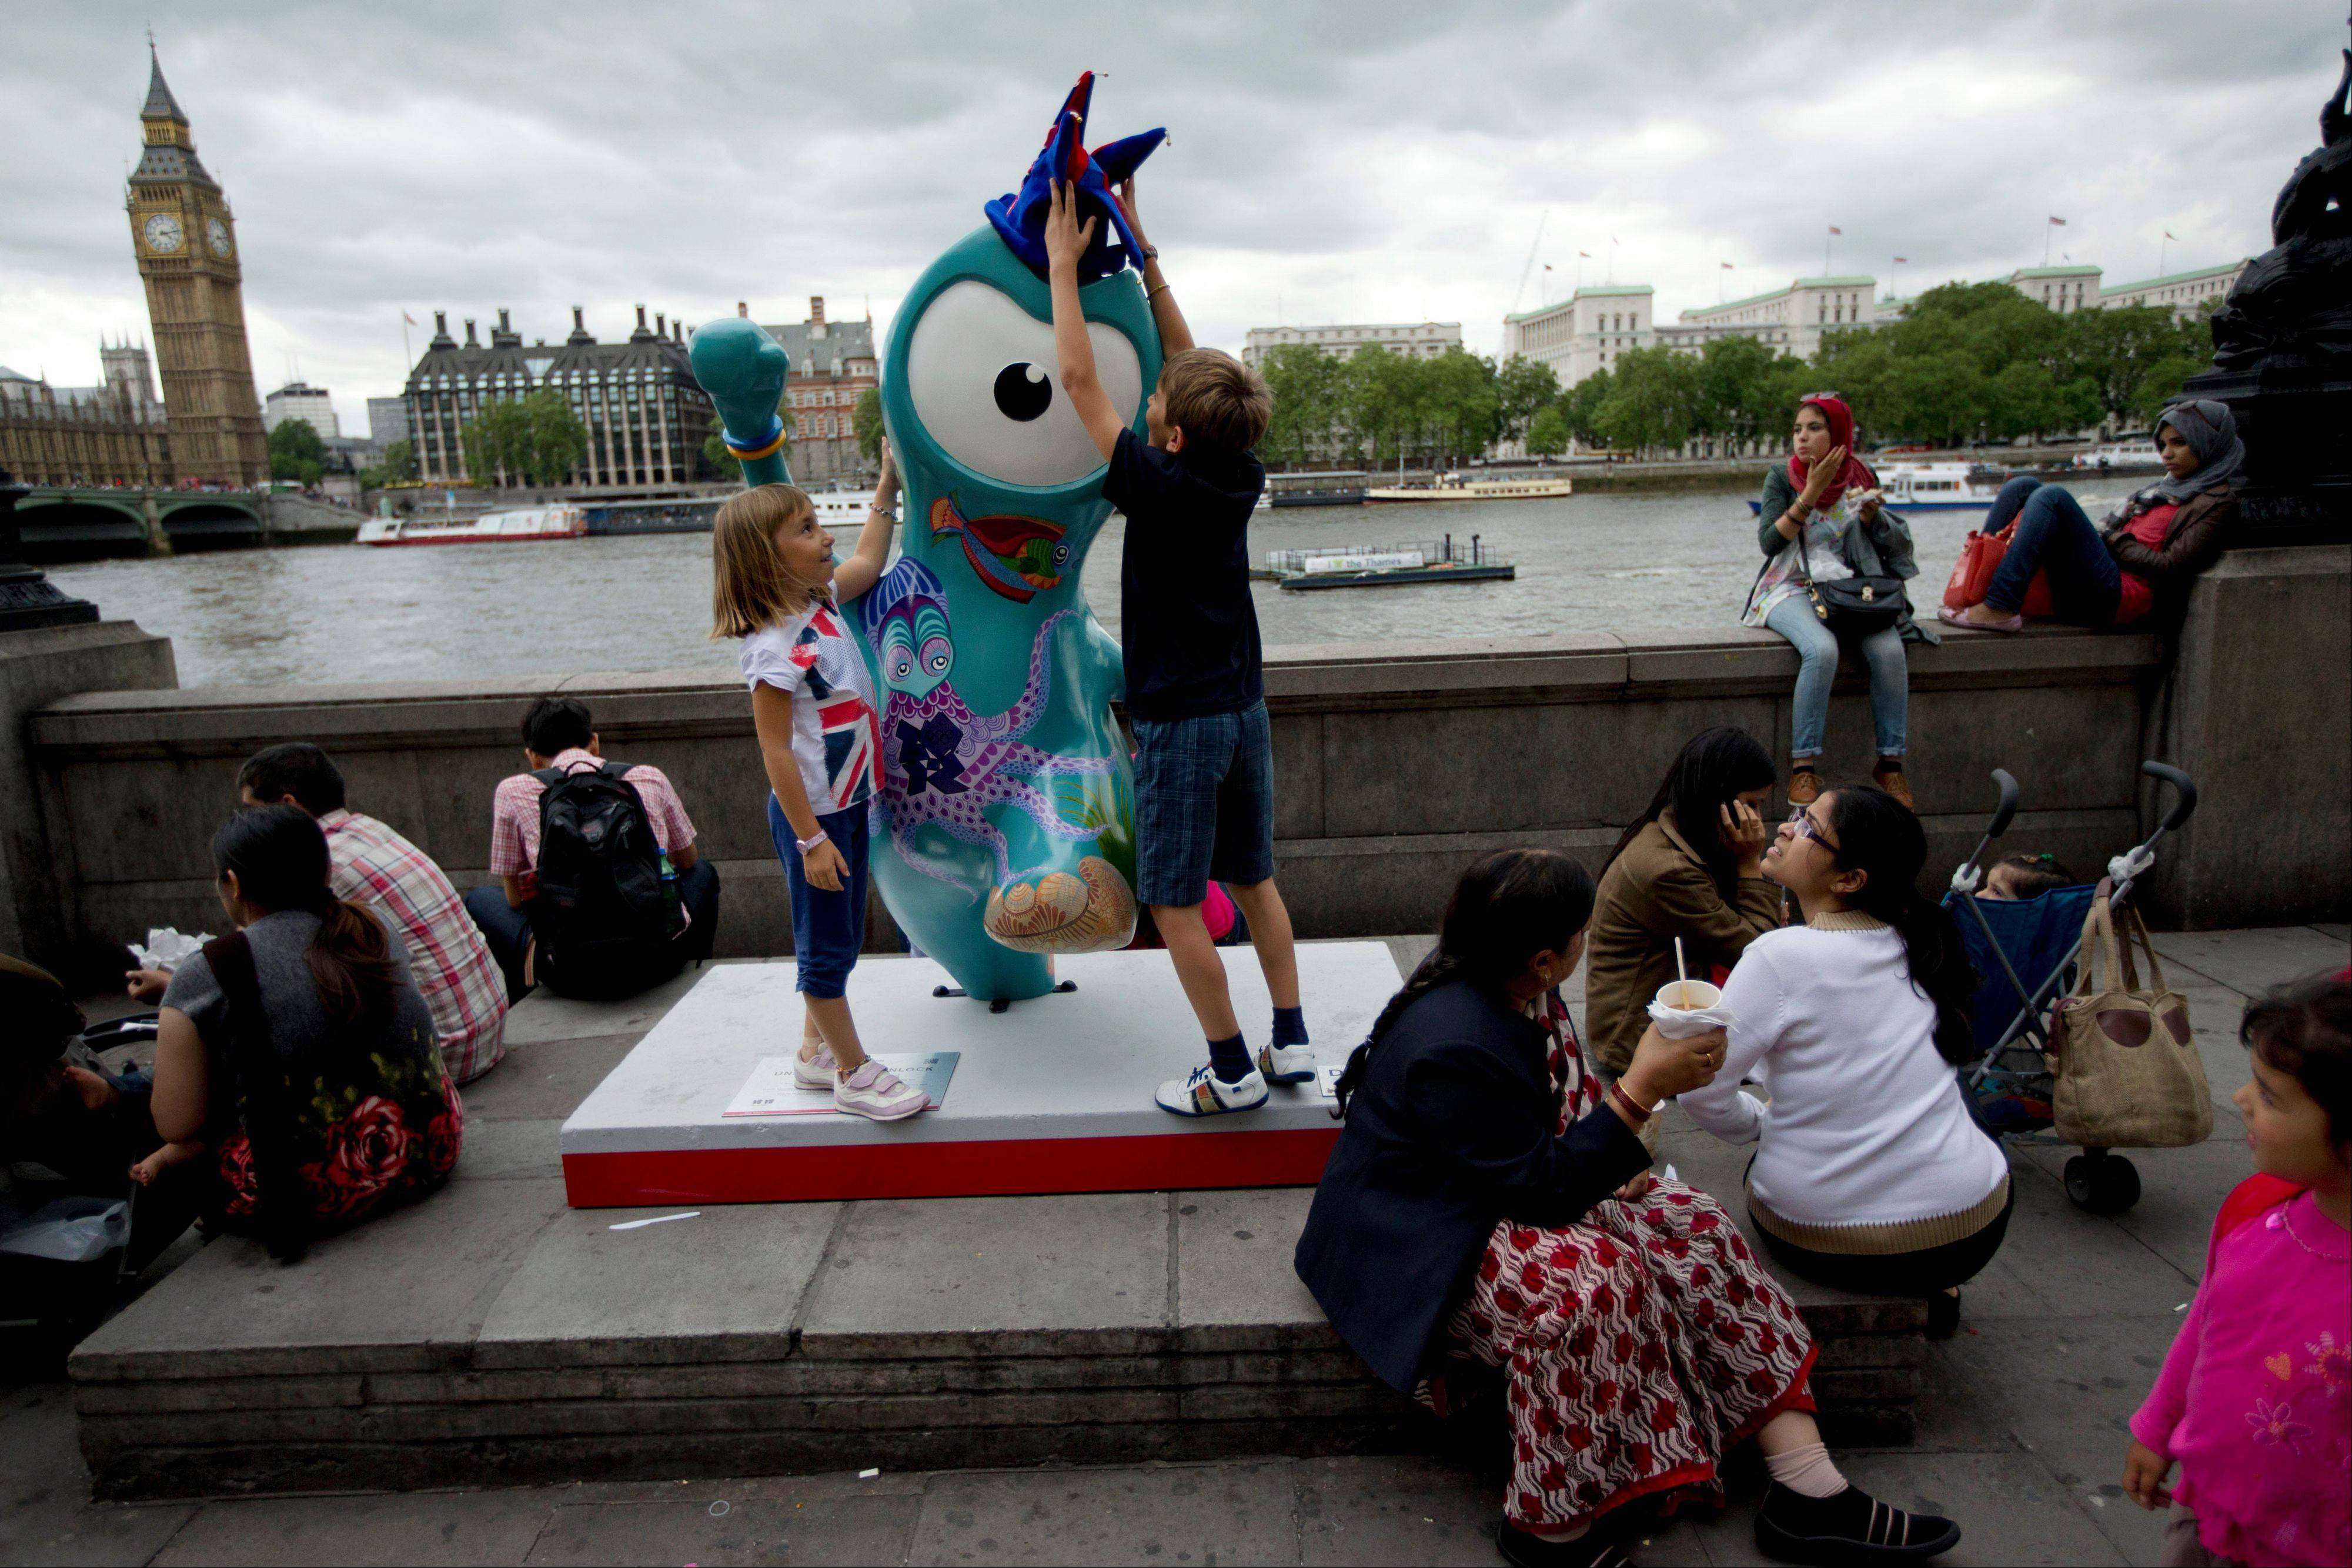 Children play with a statue of Wenlock, the Olympic mascot for the 2012 Olympics in London.